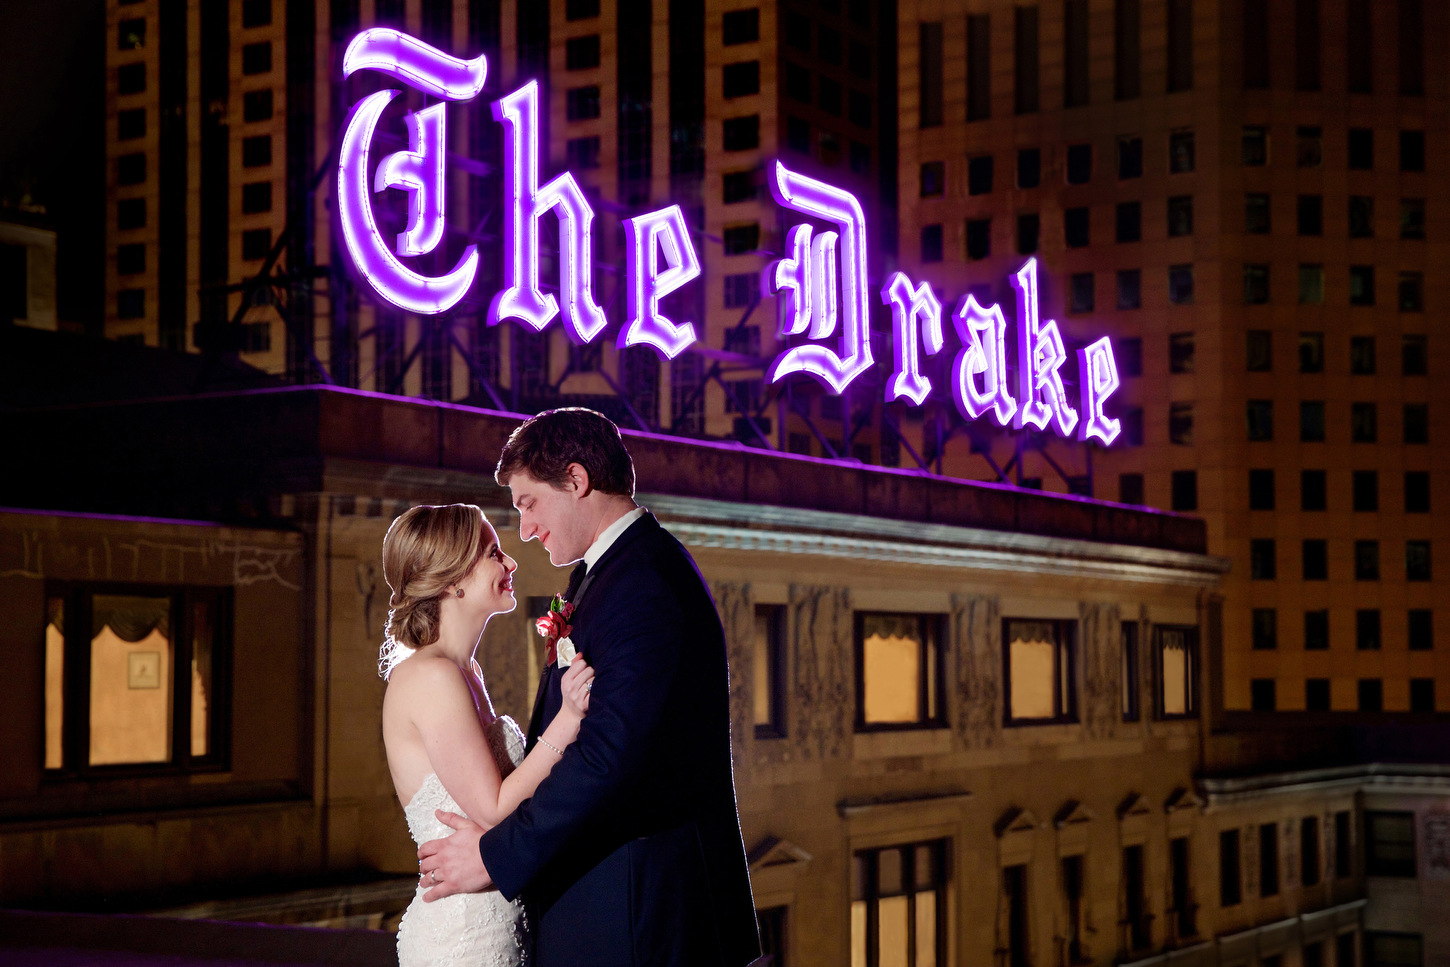 ALLISON AND KYLE'S WEDDING WAS AN ABSOLUTE DREAM AT THE DRAKE CHICAGO. WHEN WE MET WITH THIS BEAUTIFUL COUPLE, WE KNEW IMMEDIATELY THEY WERE A FIT FOR US. THEY ARE KIND AND APPRECIATE THE ARTISTRY OF A PHOTOGRAPH. WE WERE BEYOND HONORED TO BE PART OF THEIR WEDDING DAY! THEIR WEDDING WAS FEATURED IN CHICAGOSTYLE WEDDINGS MAGAZINE IN THE SEP/OCT 2016 EDITION.